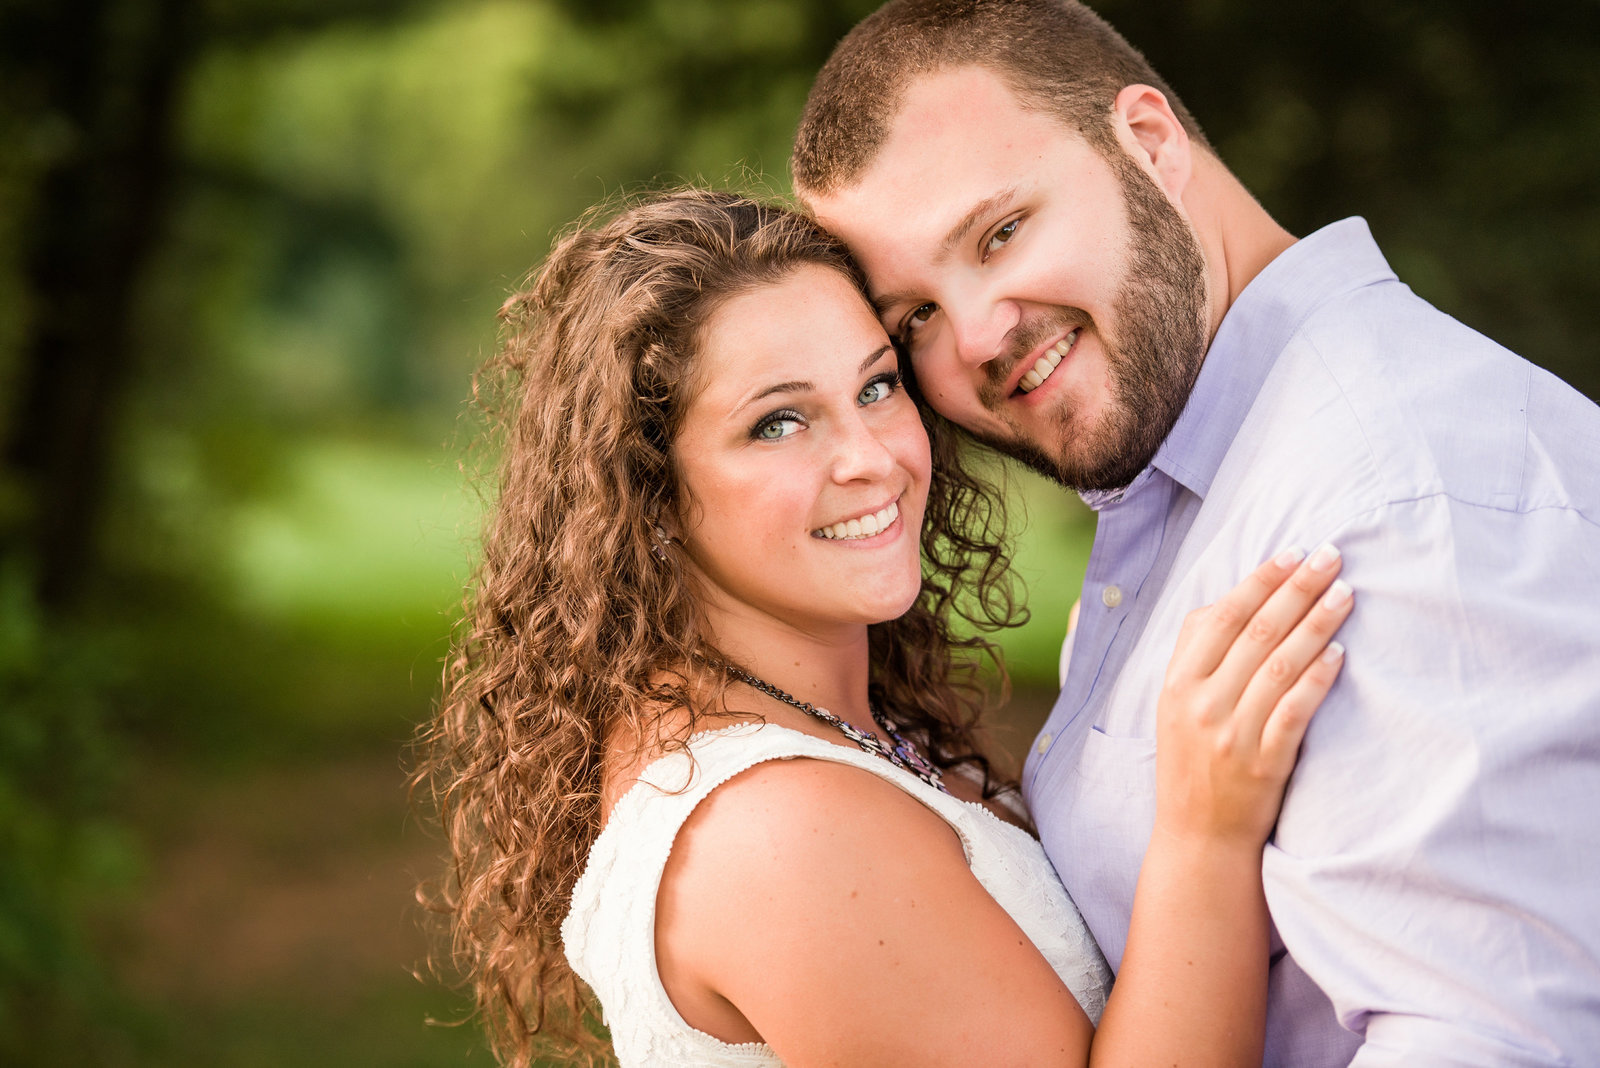 NJ_Rustic_Engagement_Photography145